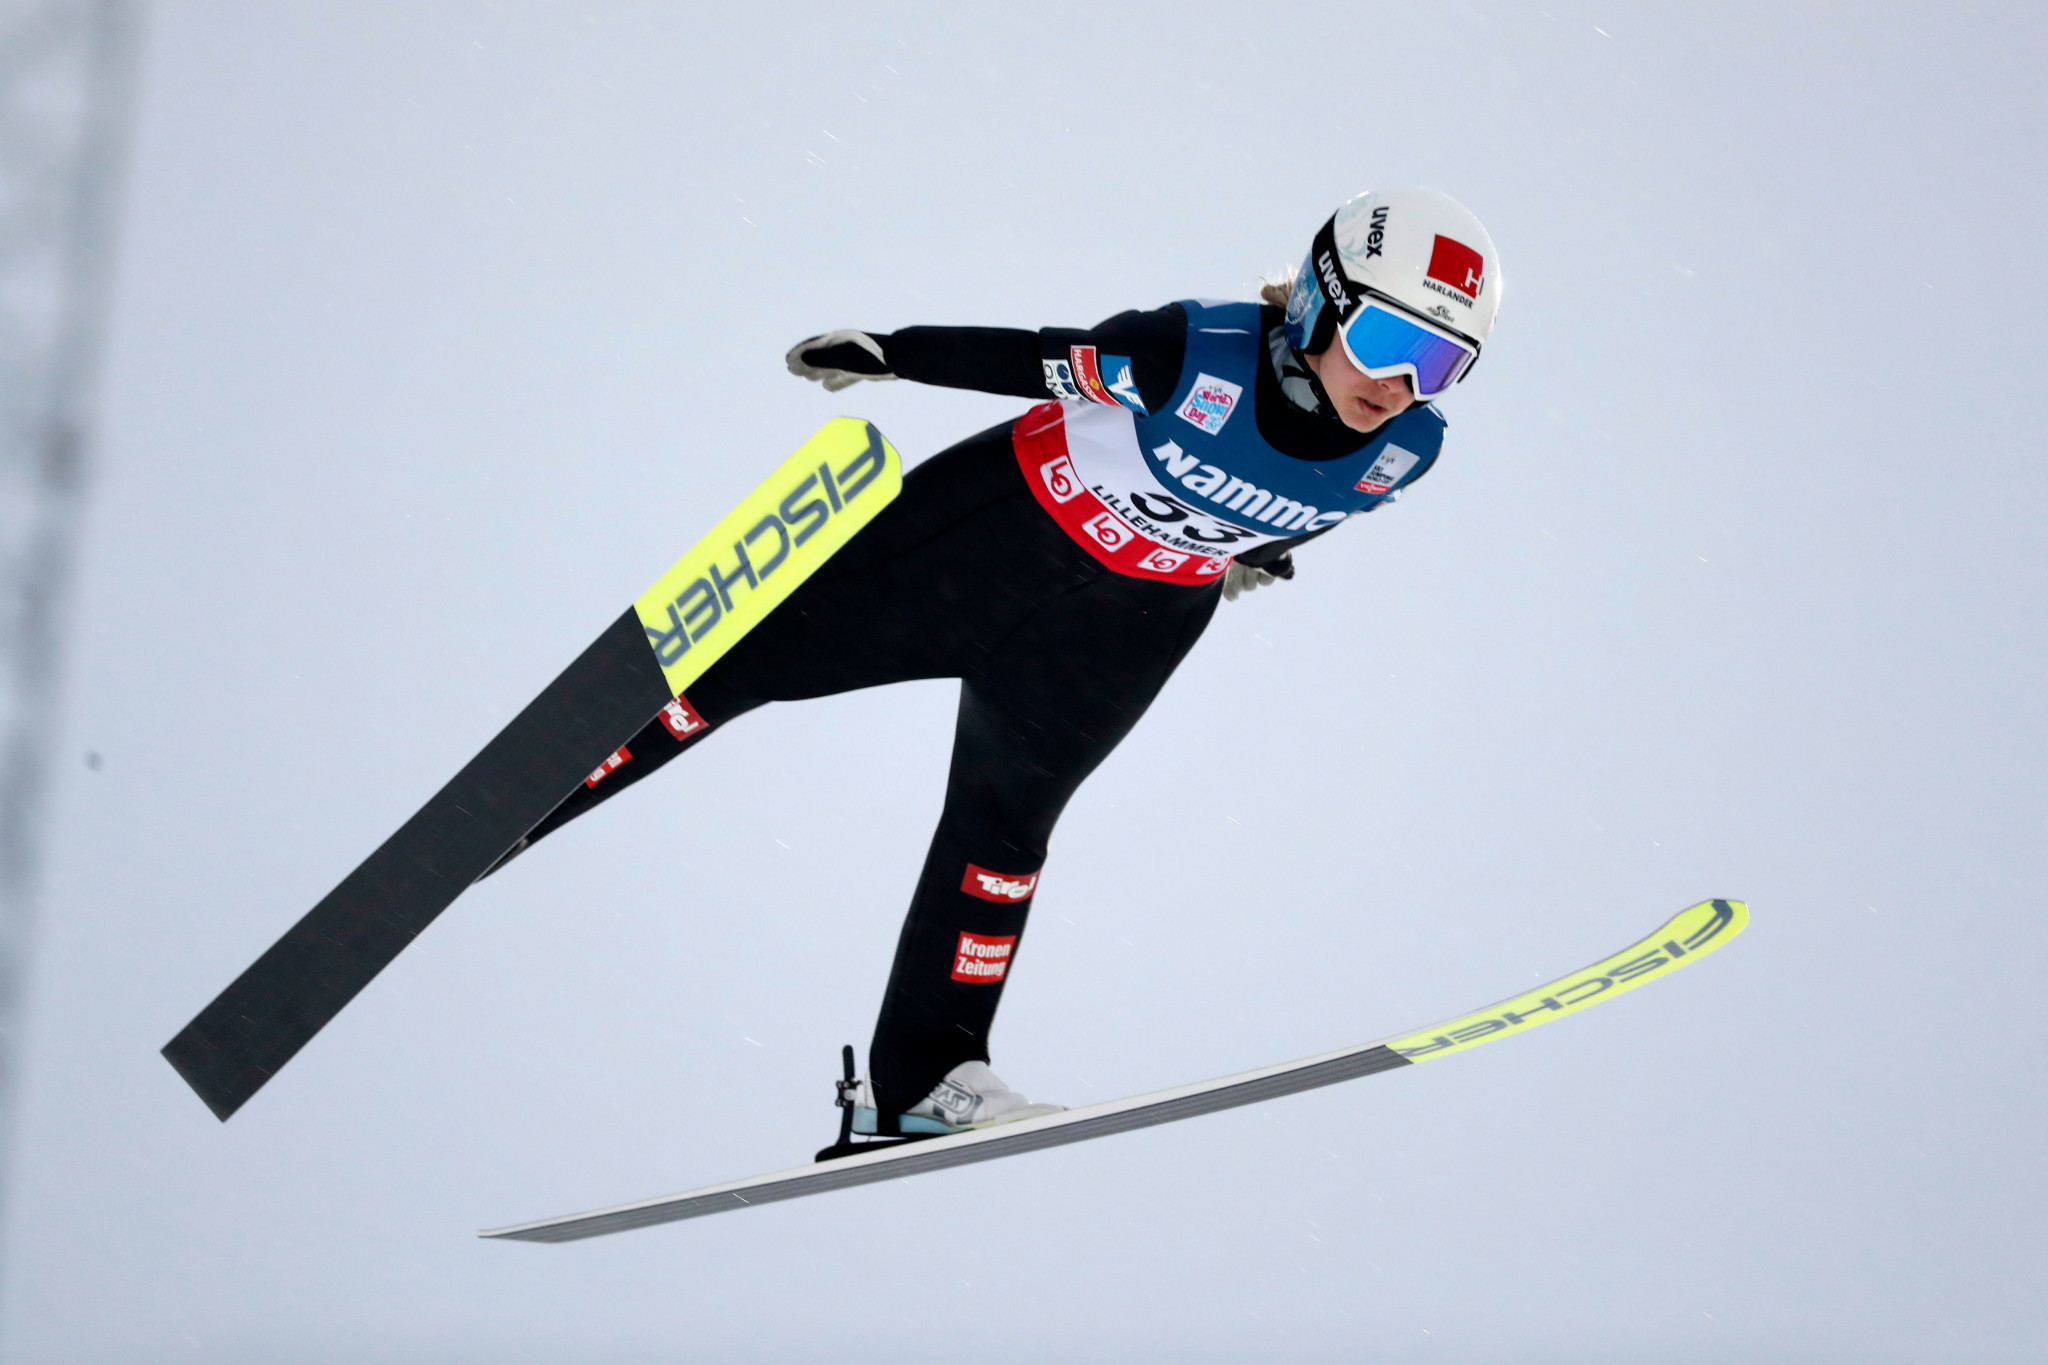 Hölzl wins first of back-to-back Ski Jumping World Cup events in Oberstdorf